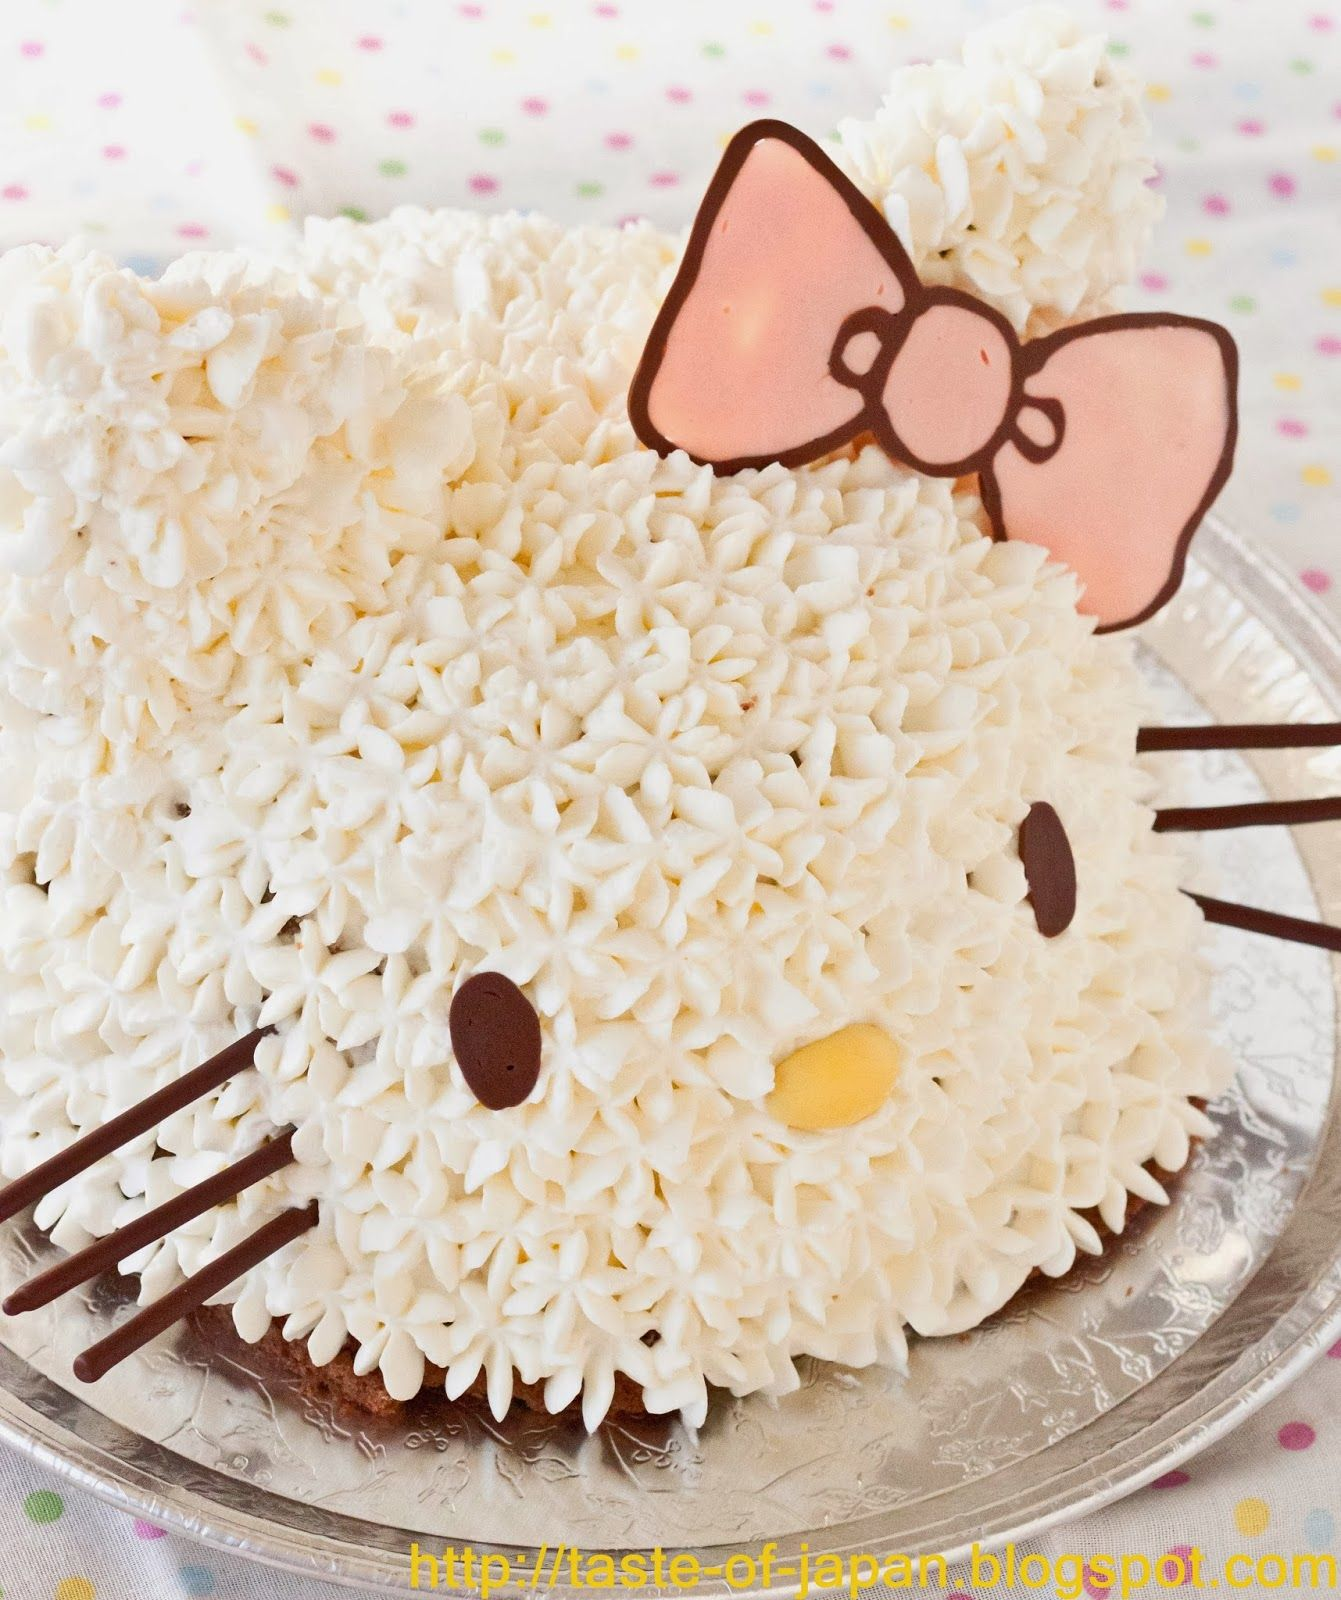 Top 10 DIY Darling Birthday Cakes For Girls Hello kitty cake